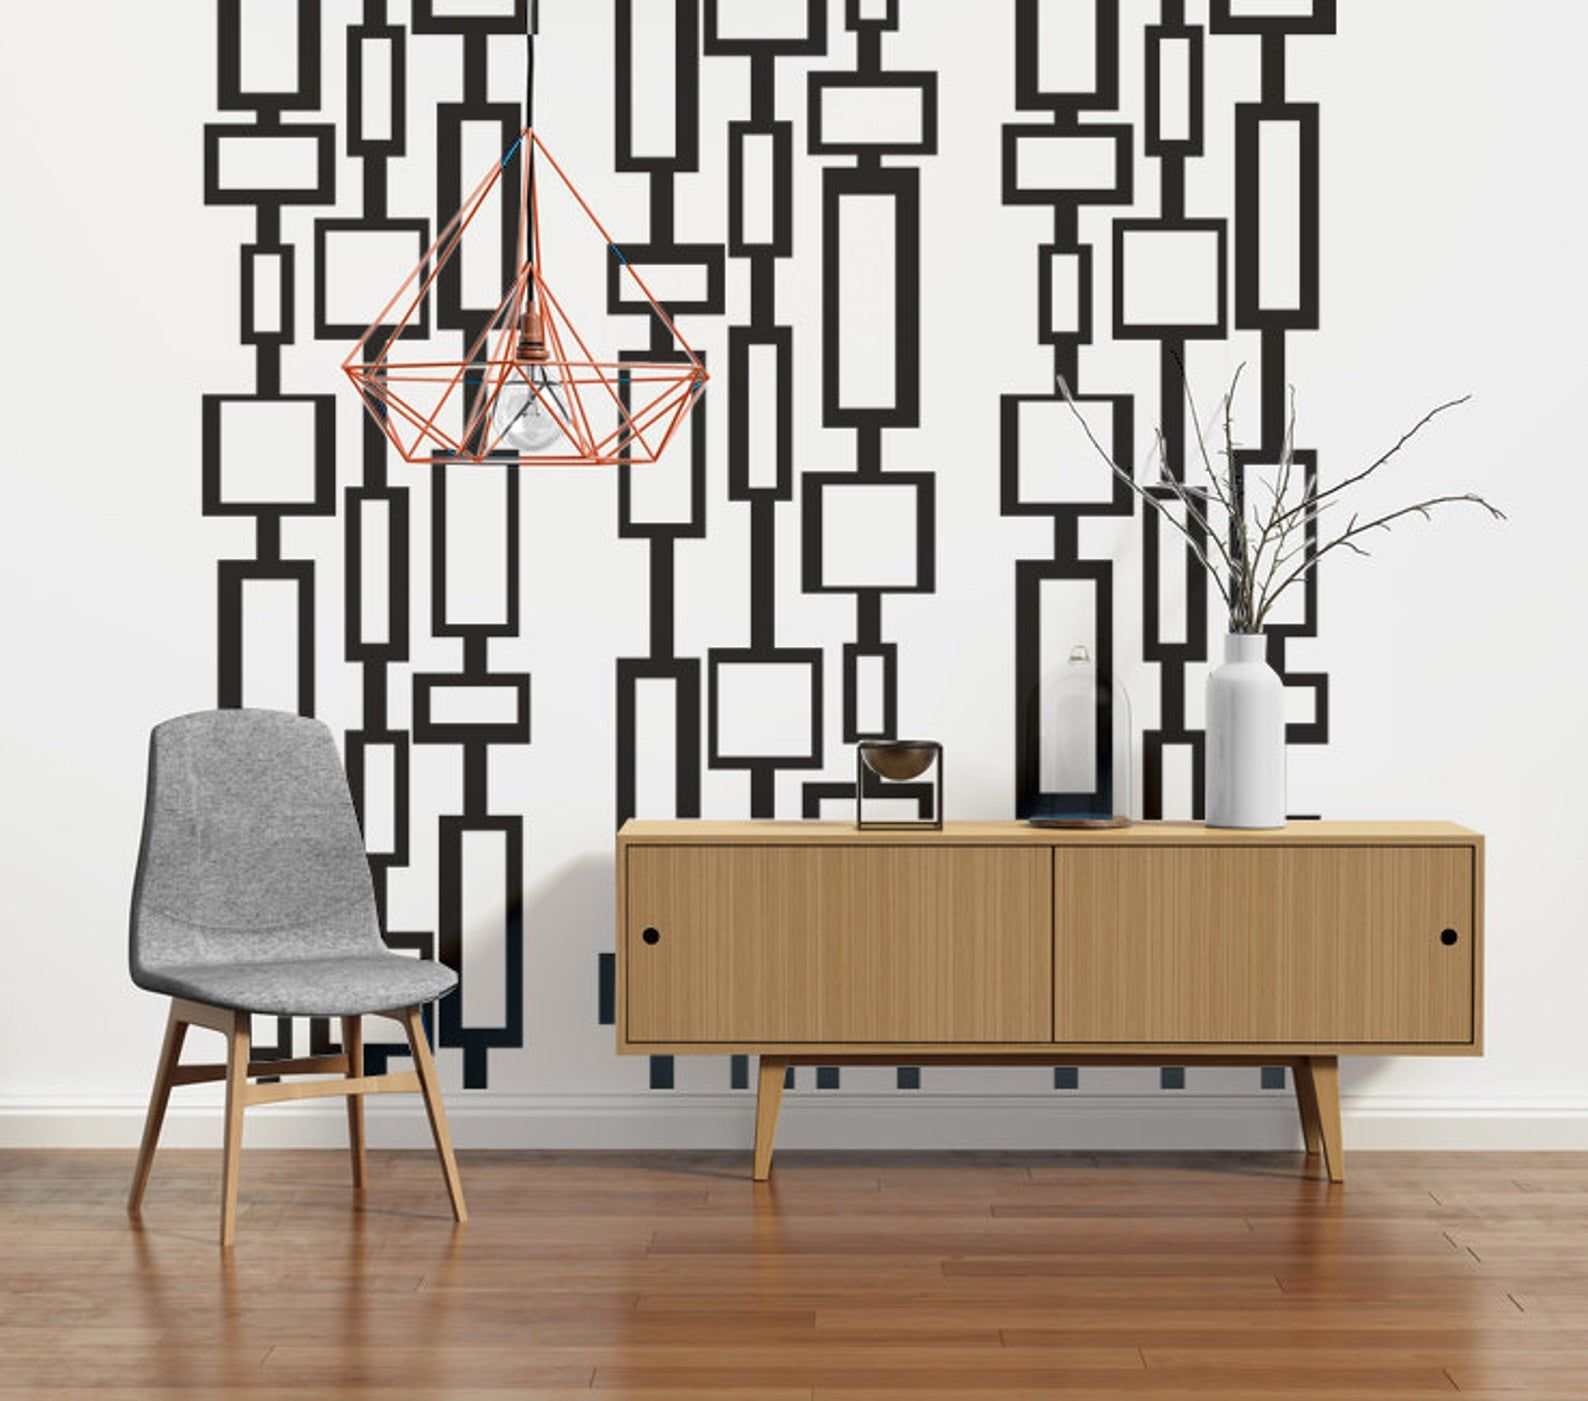 Mid Century Modern Decor Modern Wall Decals Mid Century Modern Wall Art Retro Wall Decal Geometric Wall Decals Modern Nursery Decor Mid Century Modern Decor Modern Decor Modern Nursery Decor